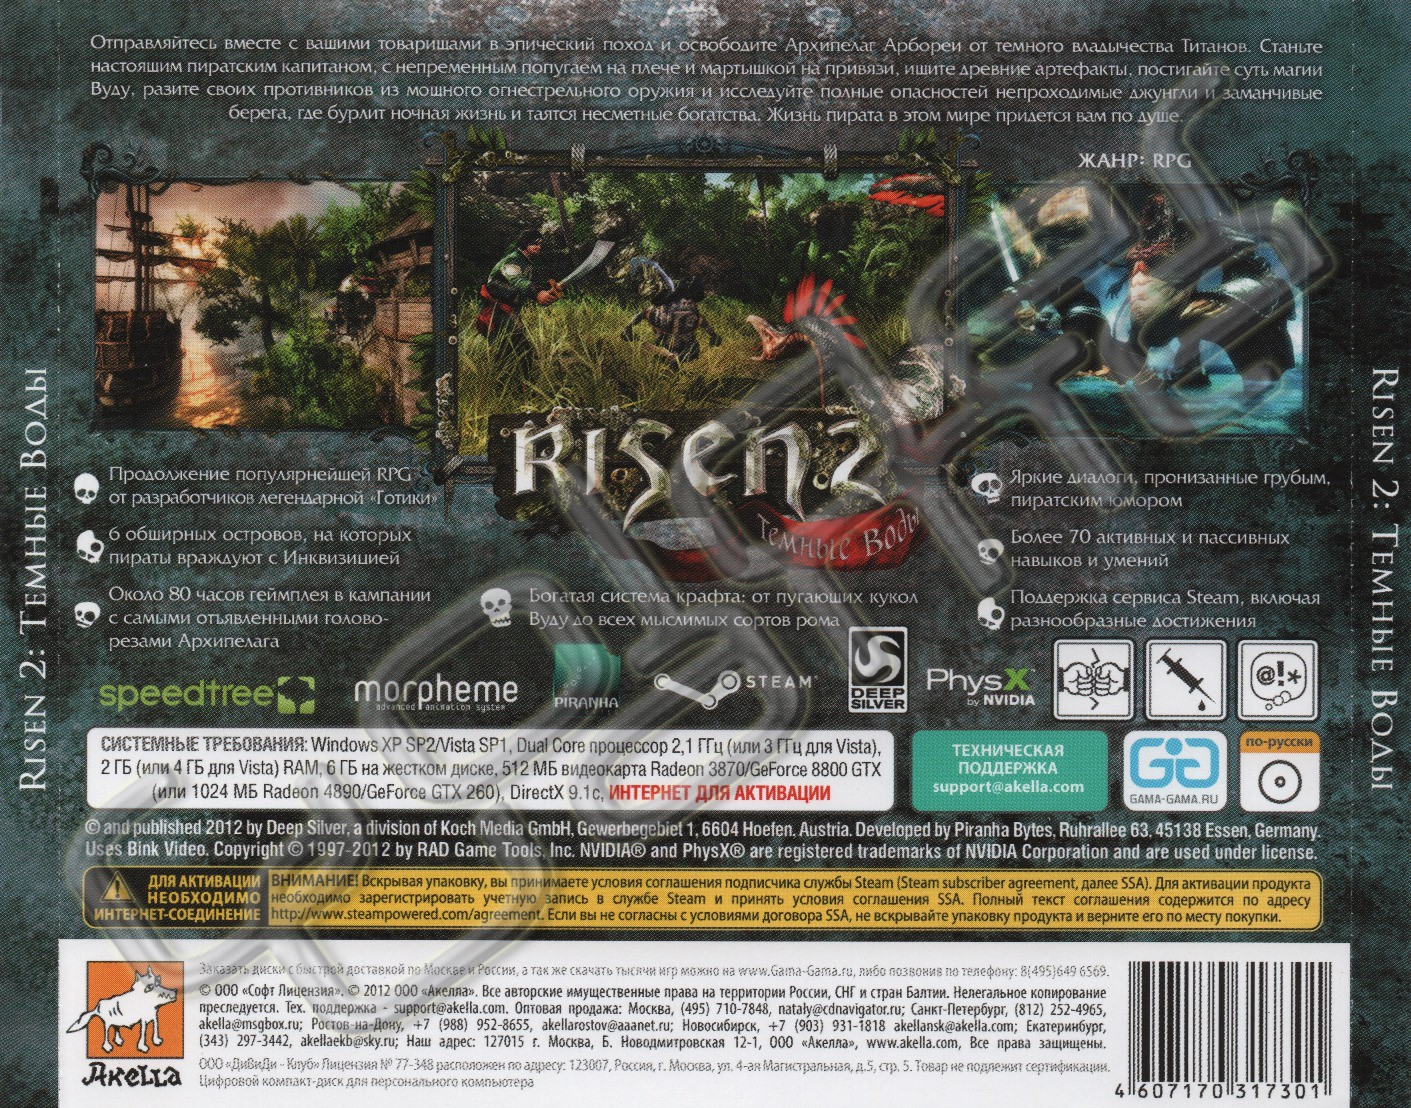 Risen 2: Dark Waters (Photo CD Key) Steam (Акелла) SALE